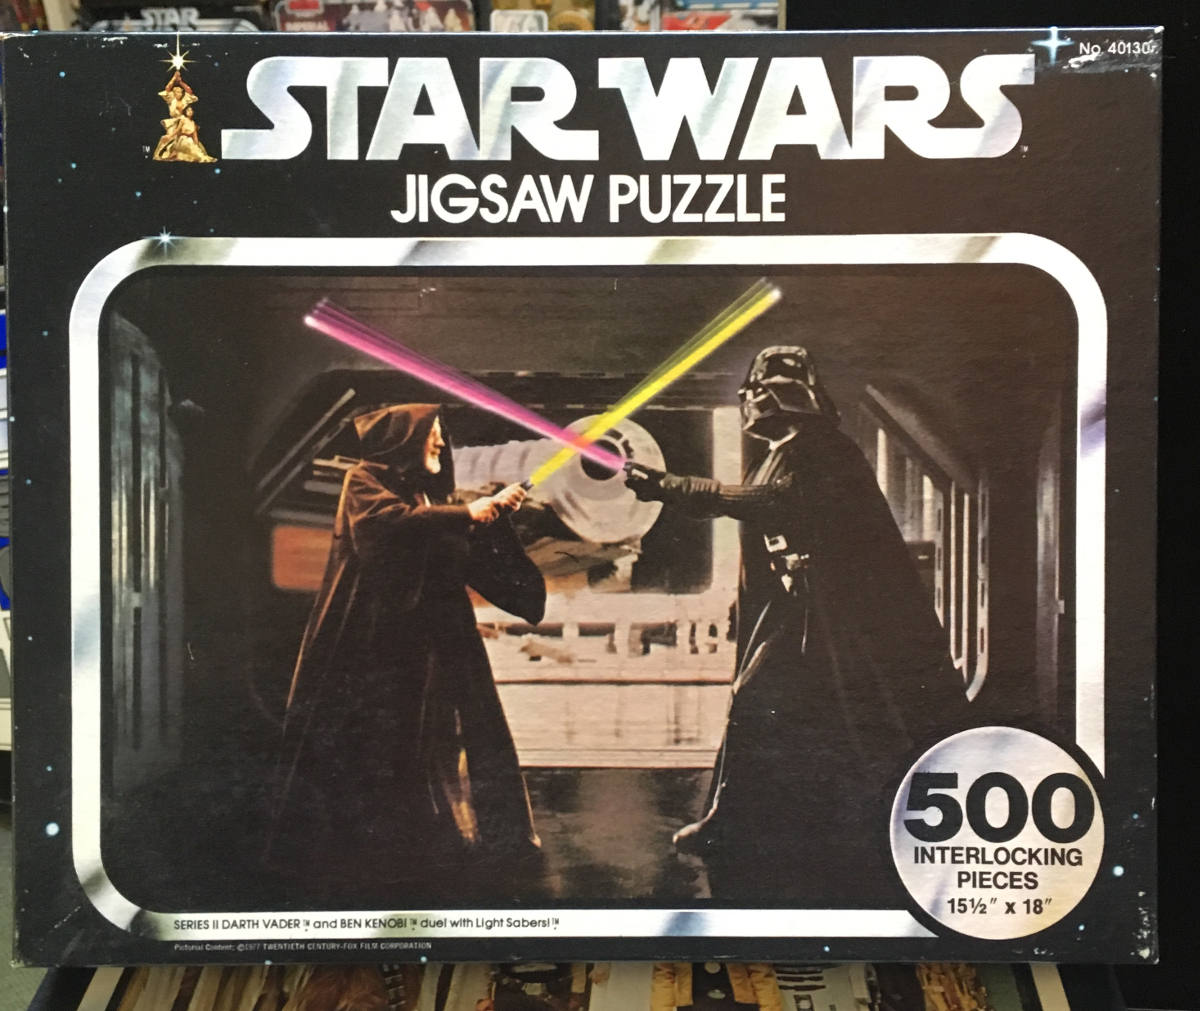 kenner star wars darth vader and ben kenobi duel with light sabers puzzle